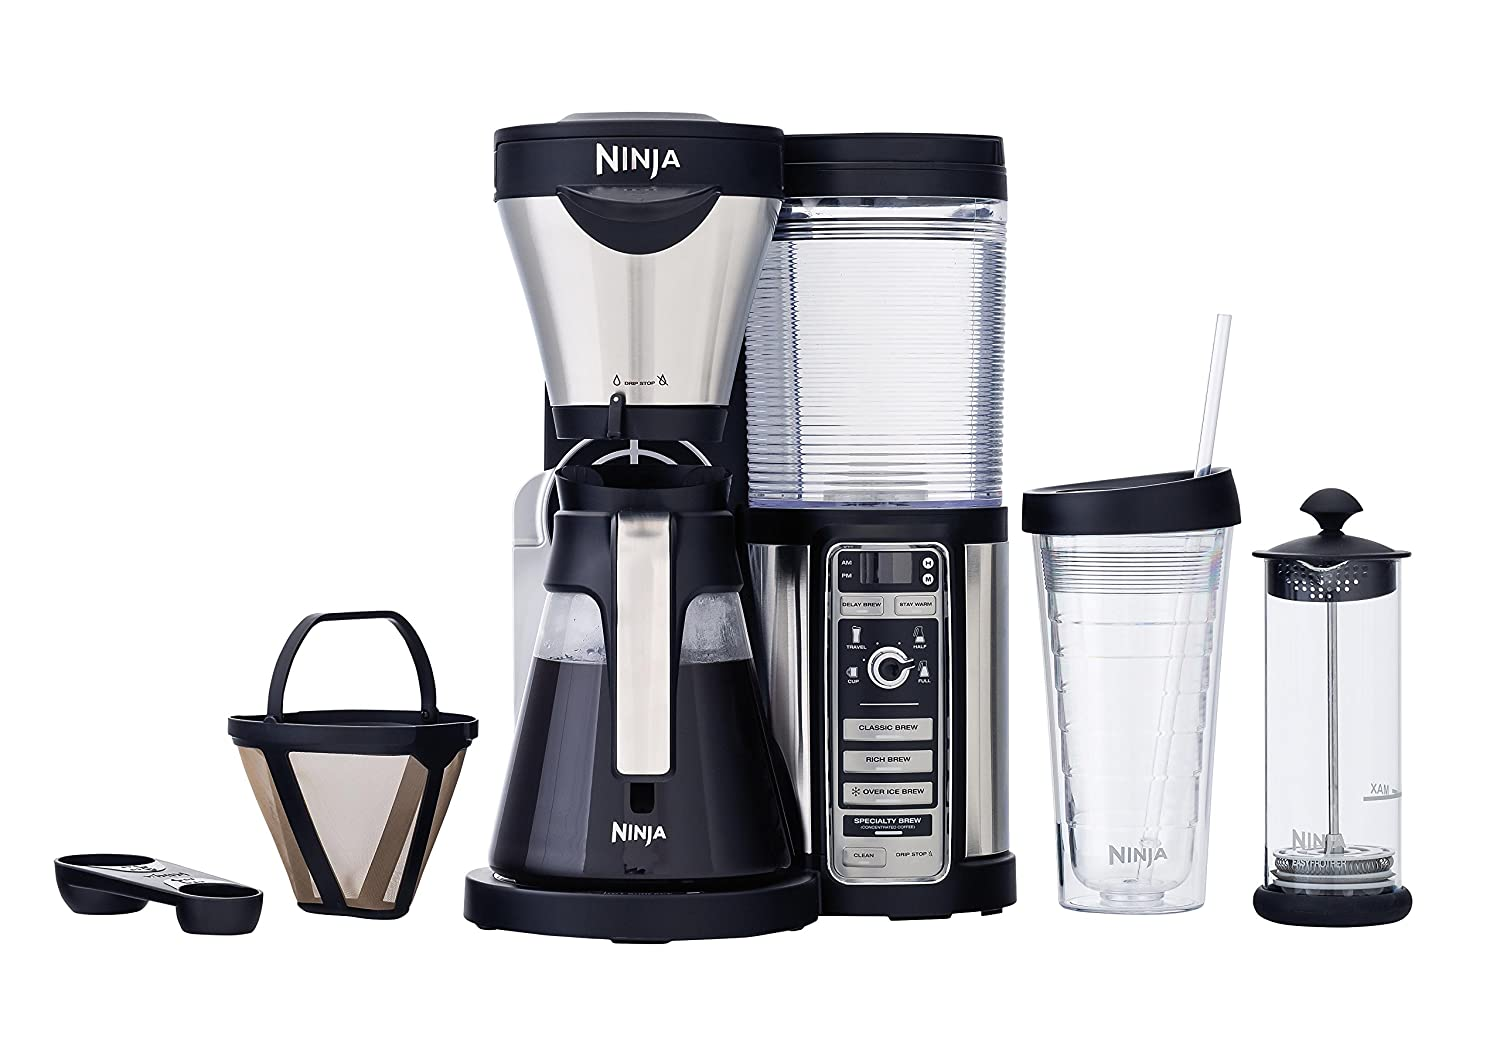 Keurig coffee makers at bed bath and beyond - Amazon Com Ninja Coffee Bar Brewer Glass Carafe Cf082 Kitchen Dining